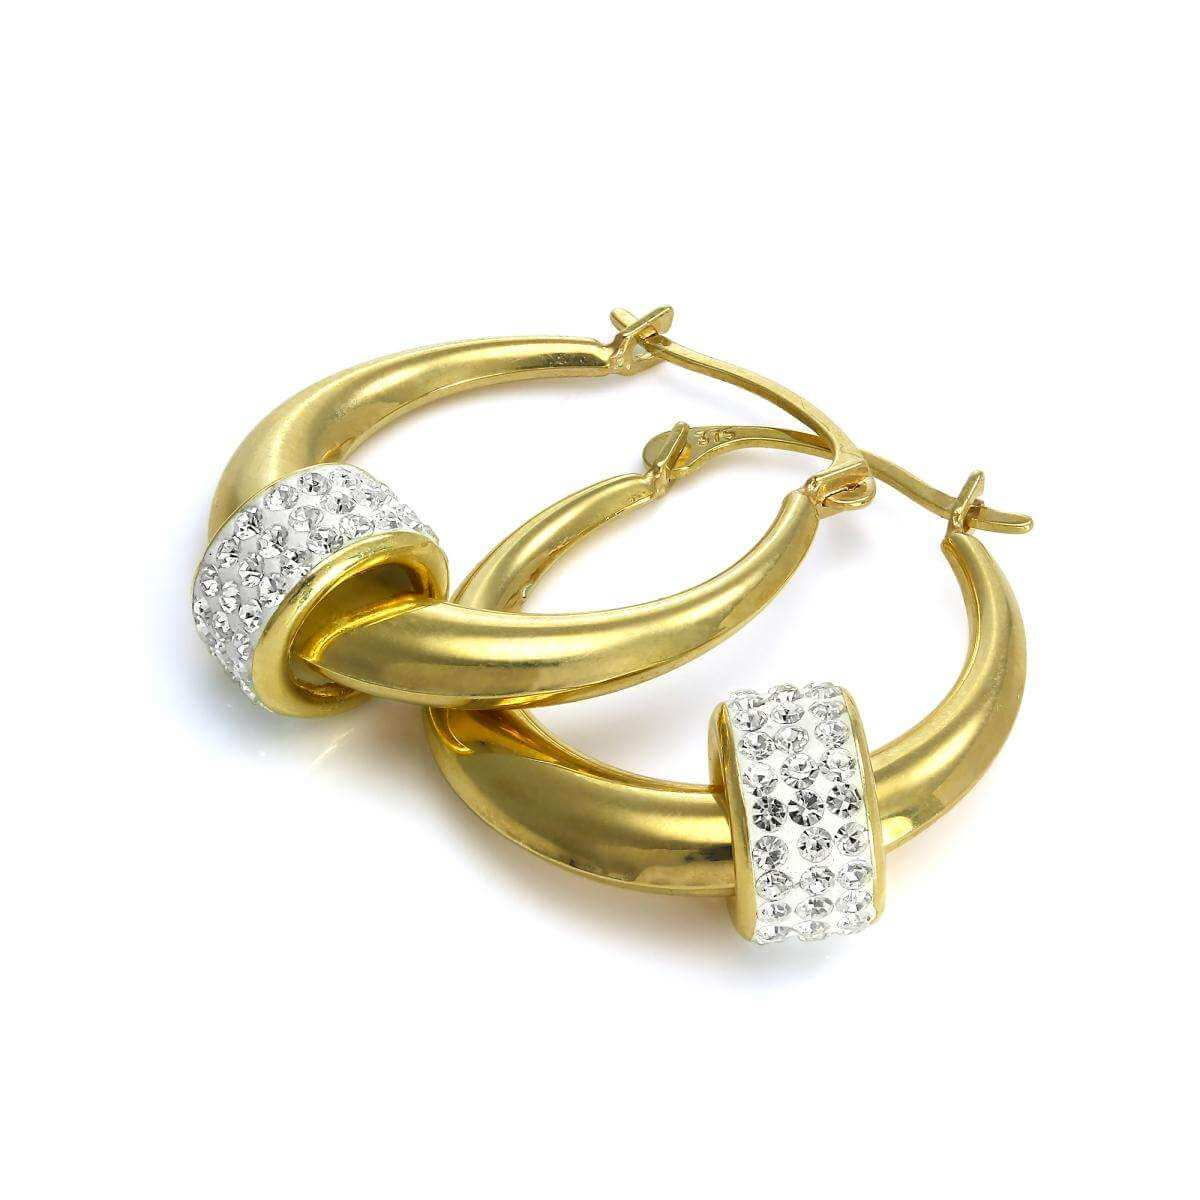 9ct Yellow Gold Creole Earrings with CZ Crystal Bead